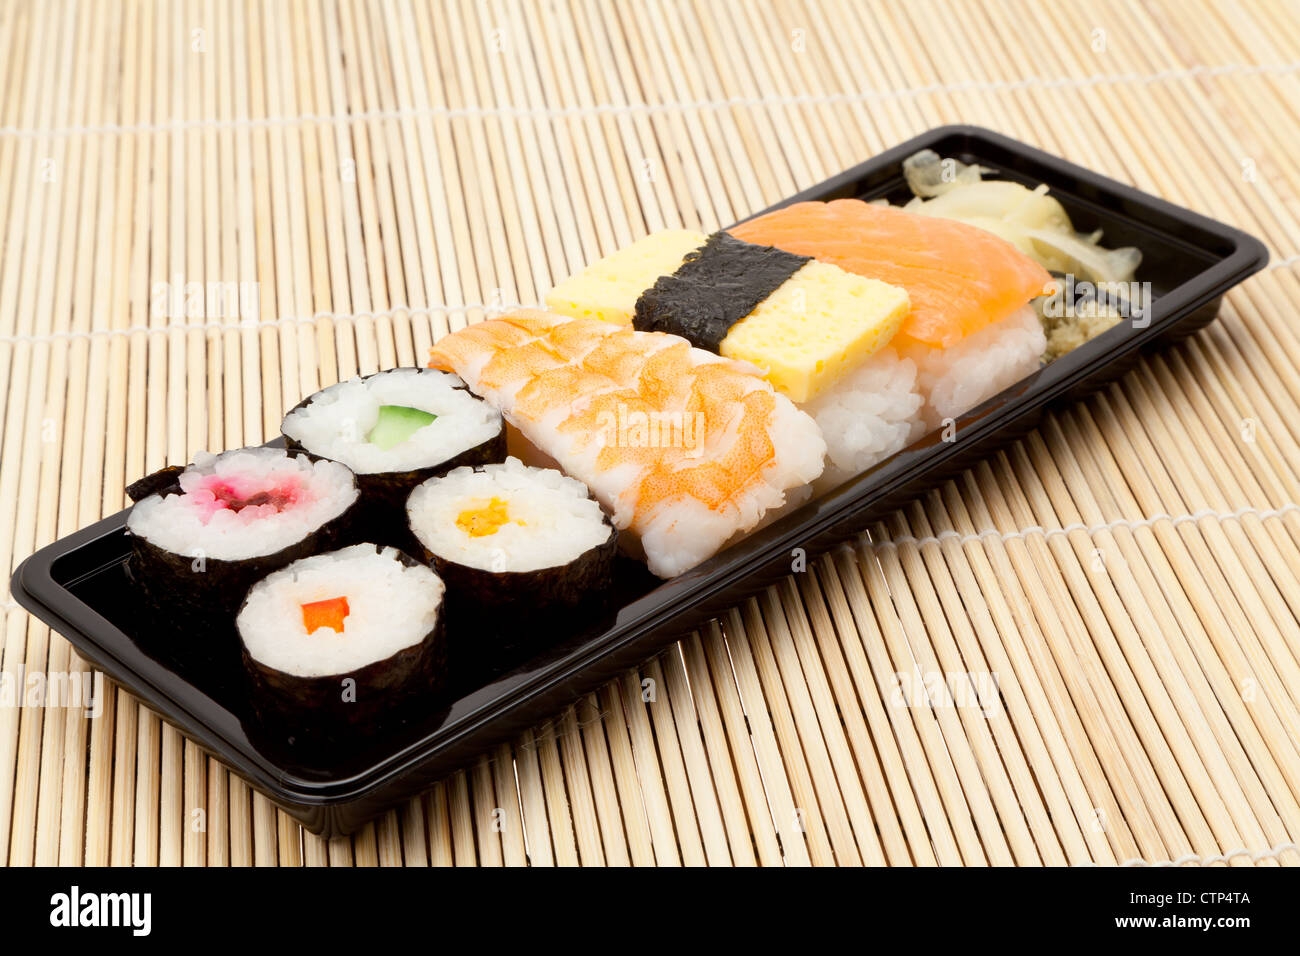 Tray of various Sushi items on a place mat - studio shot - Stock Image